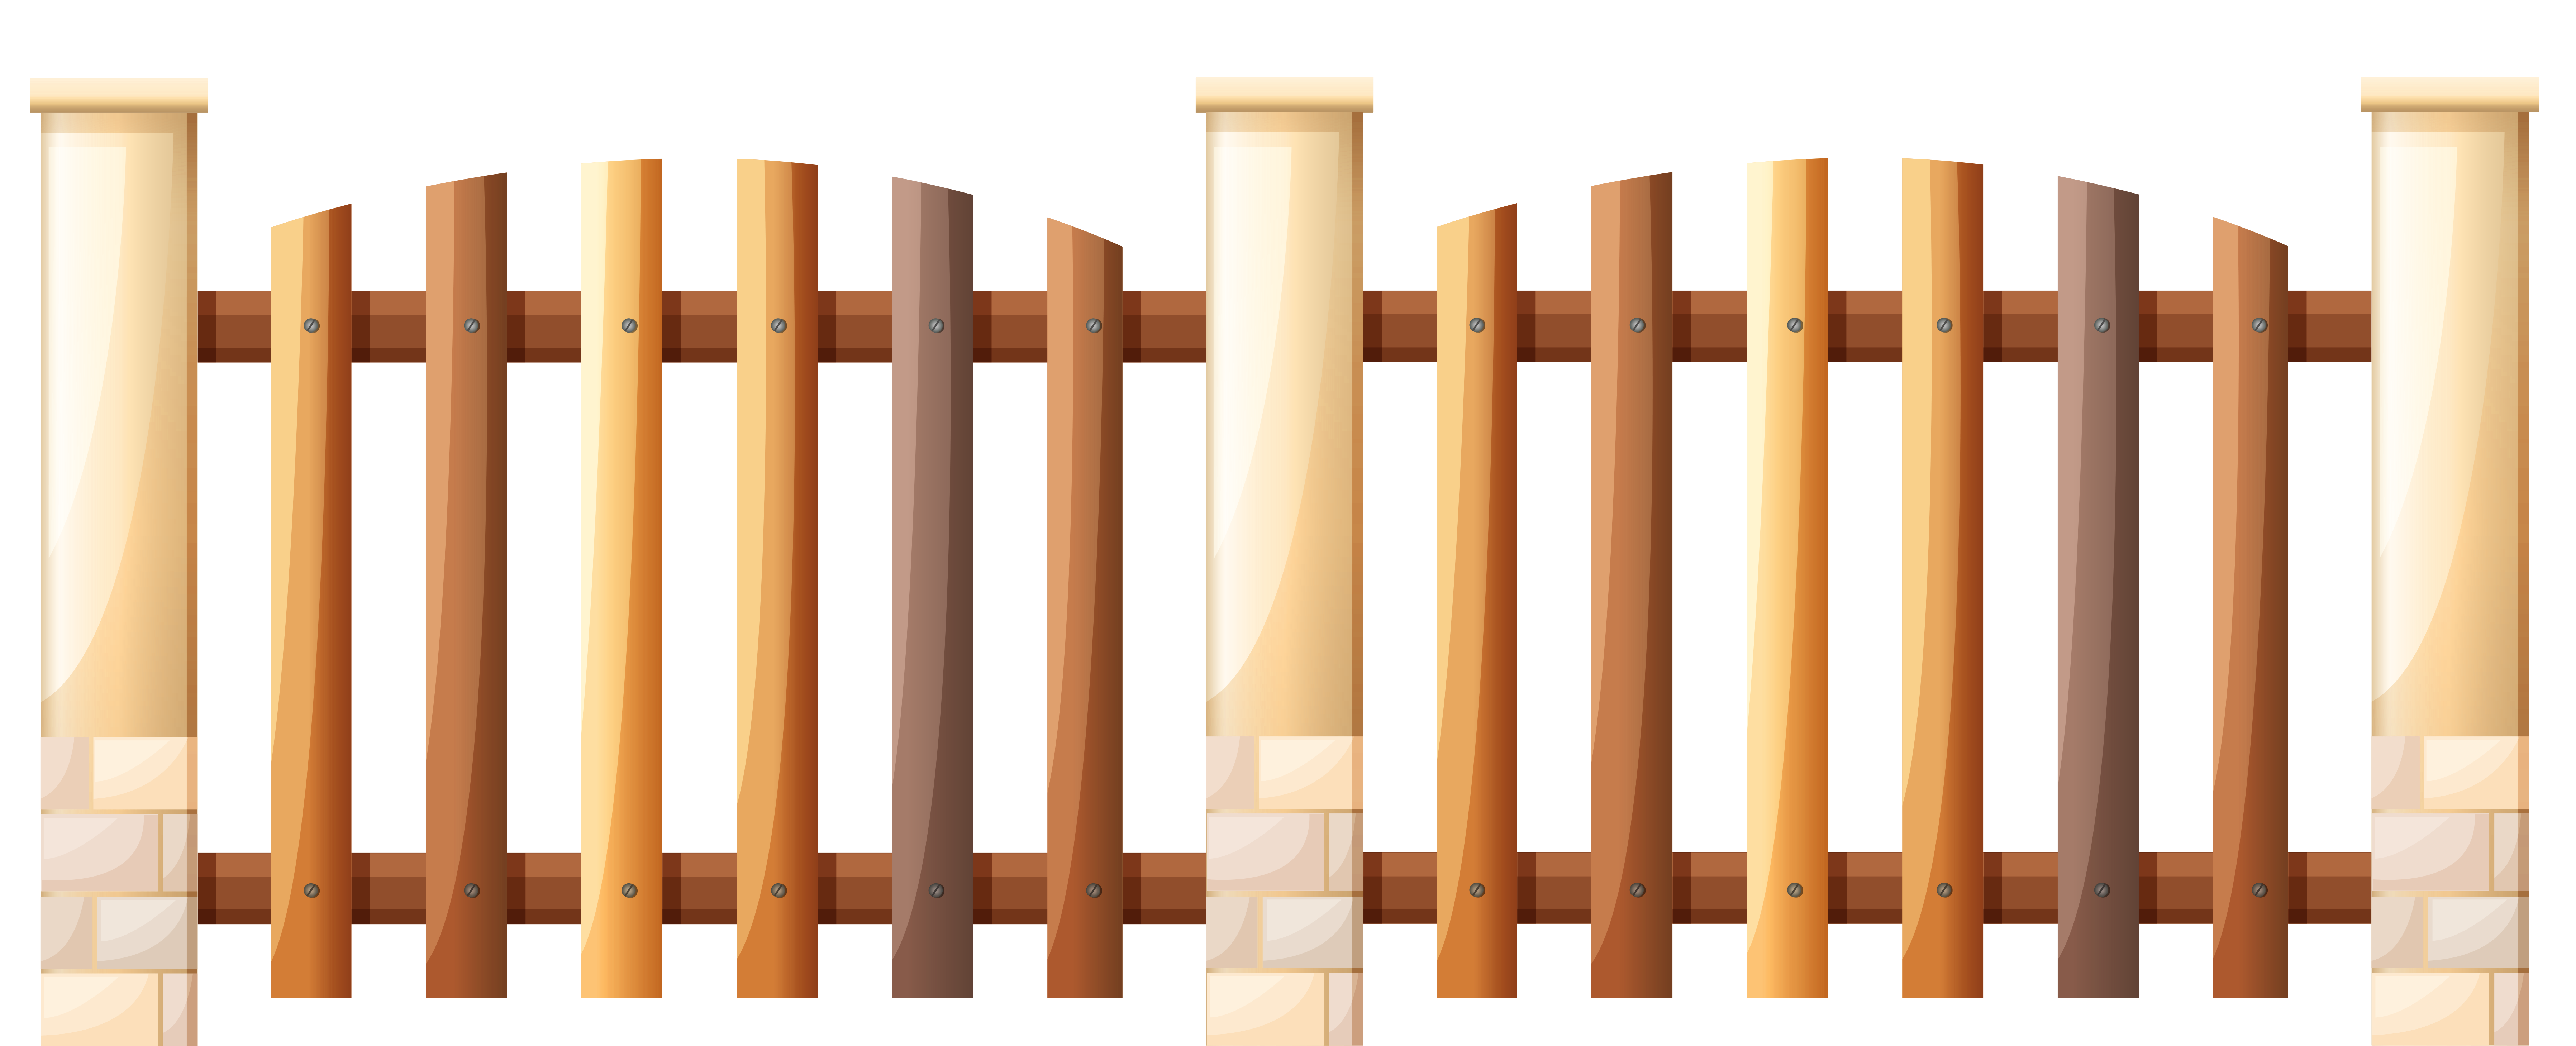 7187x2919 Fence Clipart Wooden Fence